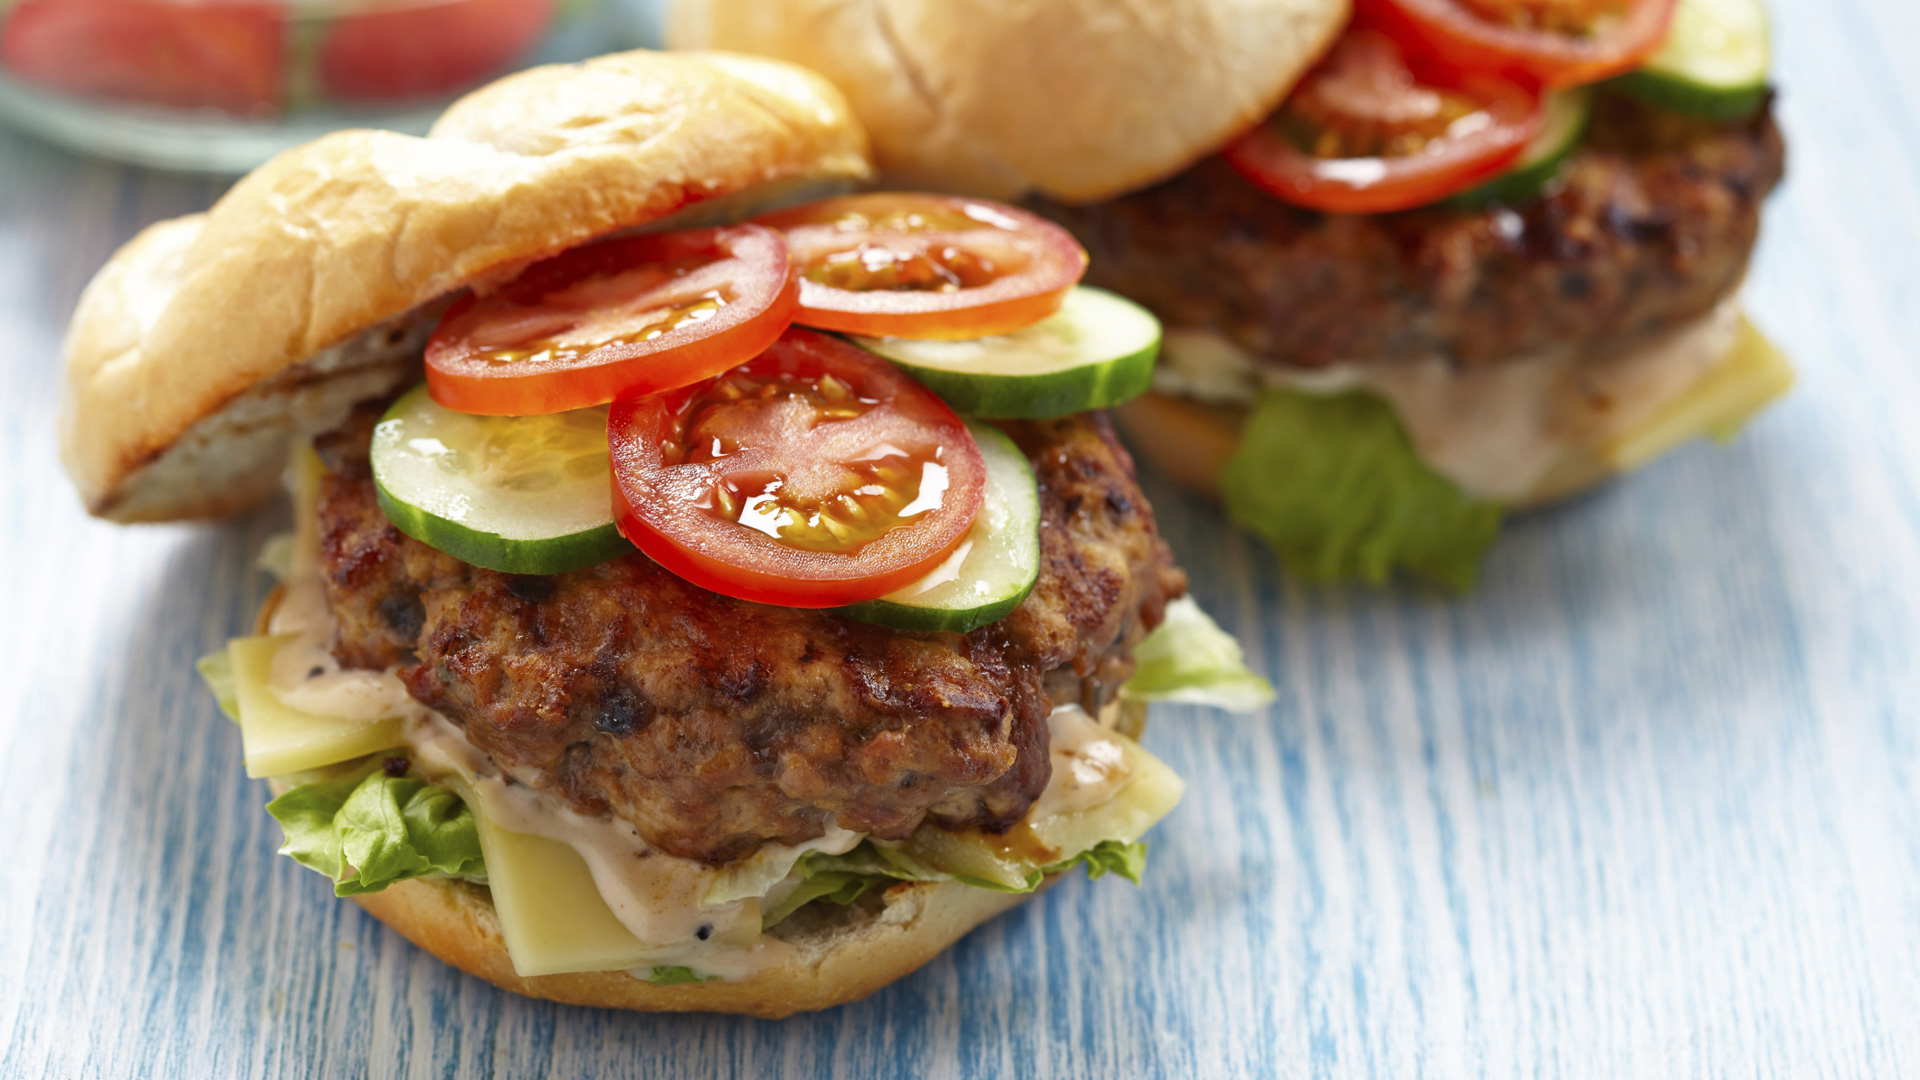 The juiciest, most mouthwatering burger recipes for summer